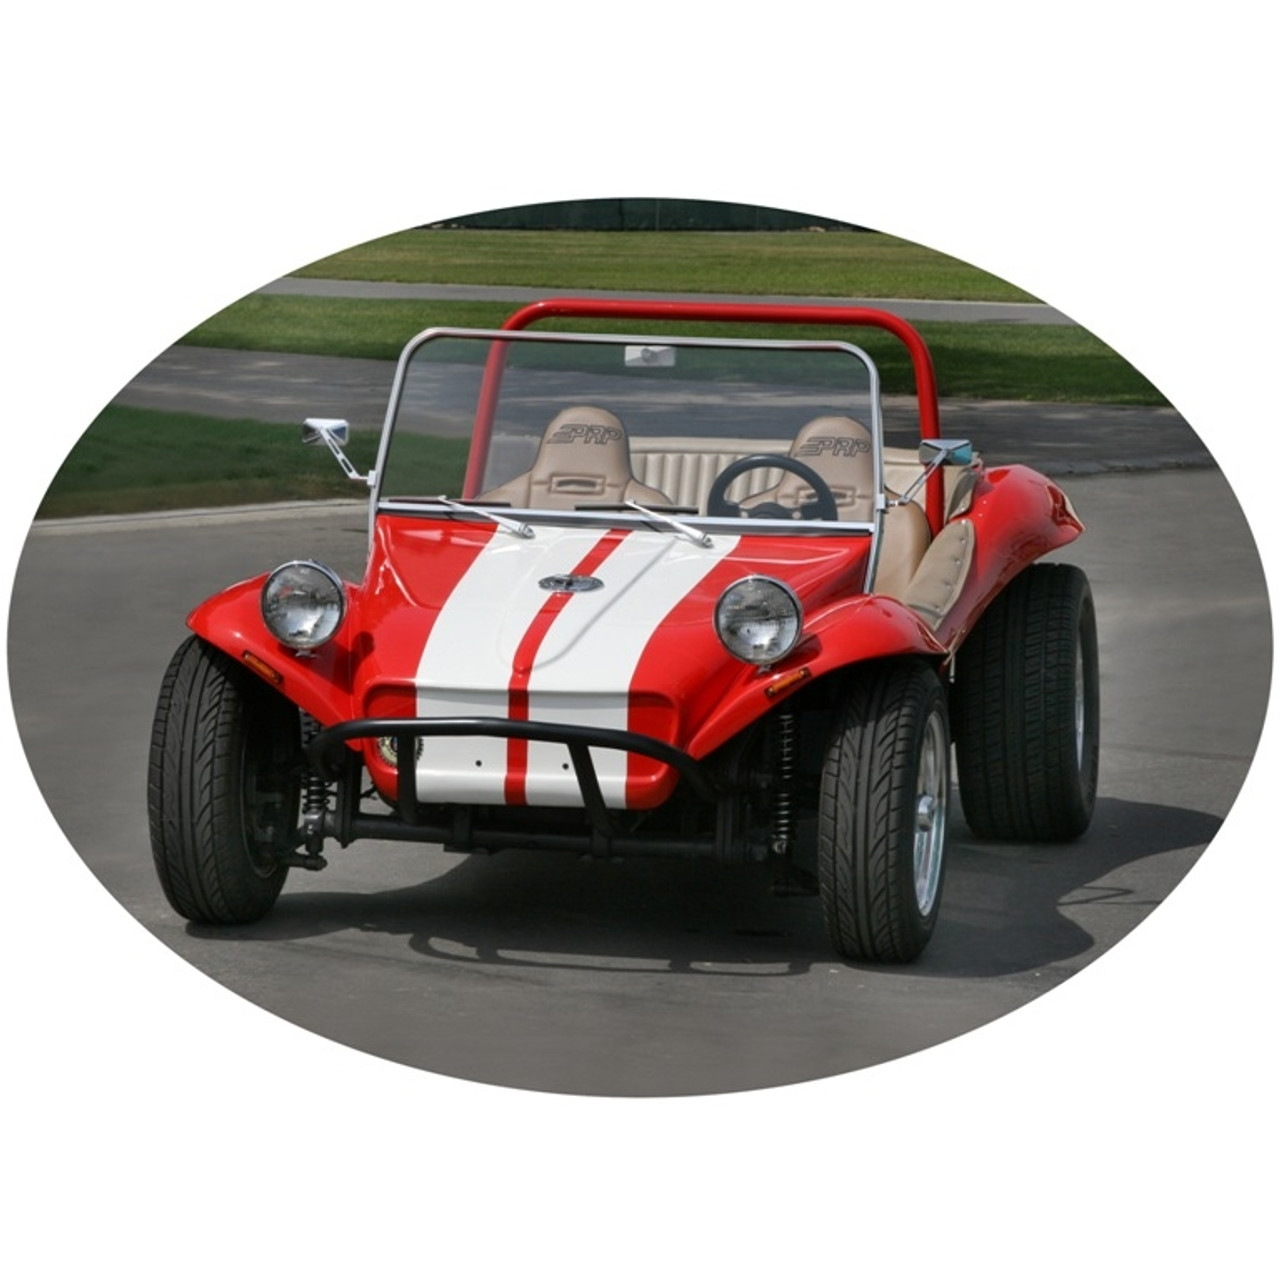 Order Manx Dune Buggy Parts | VW Dune Buggy Kits